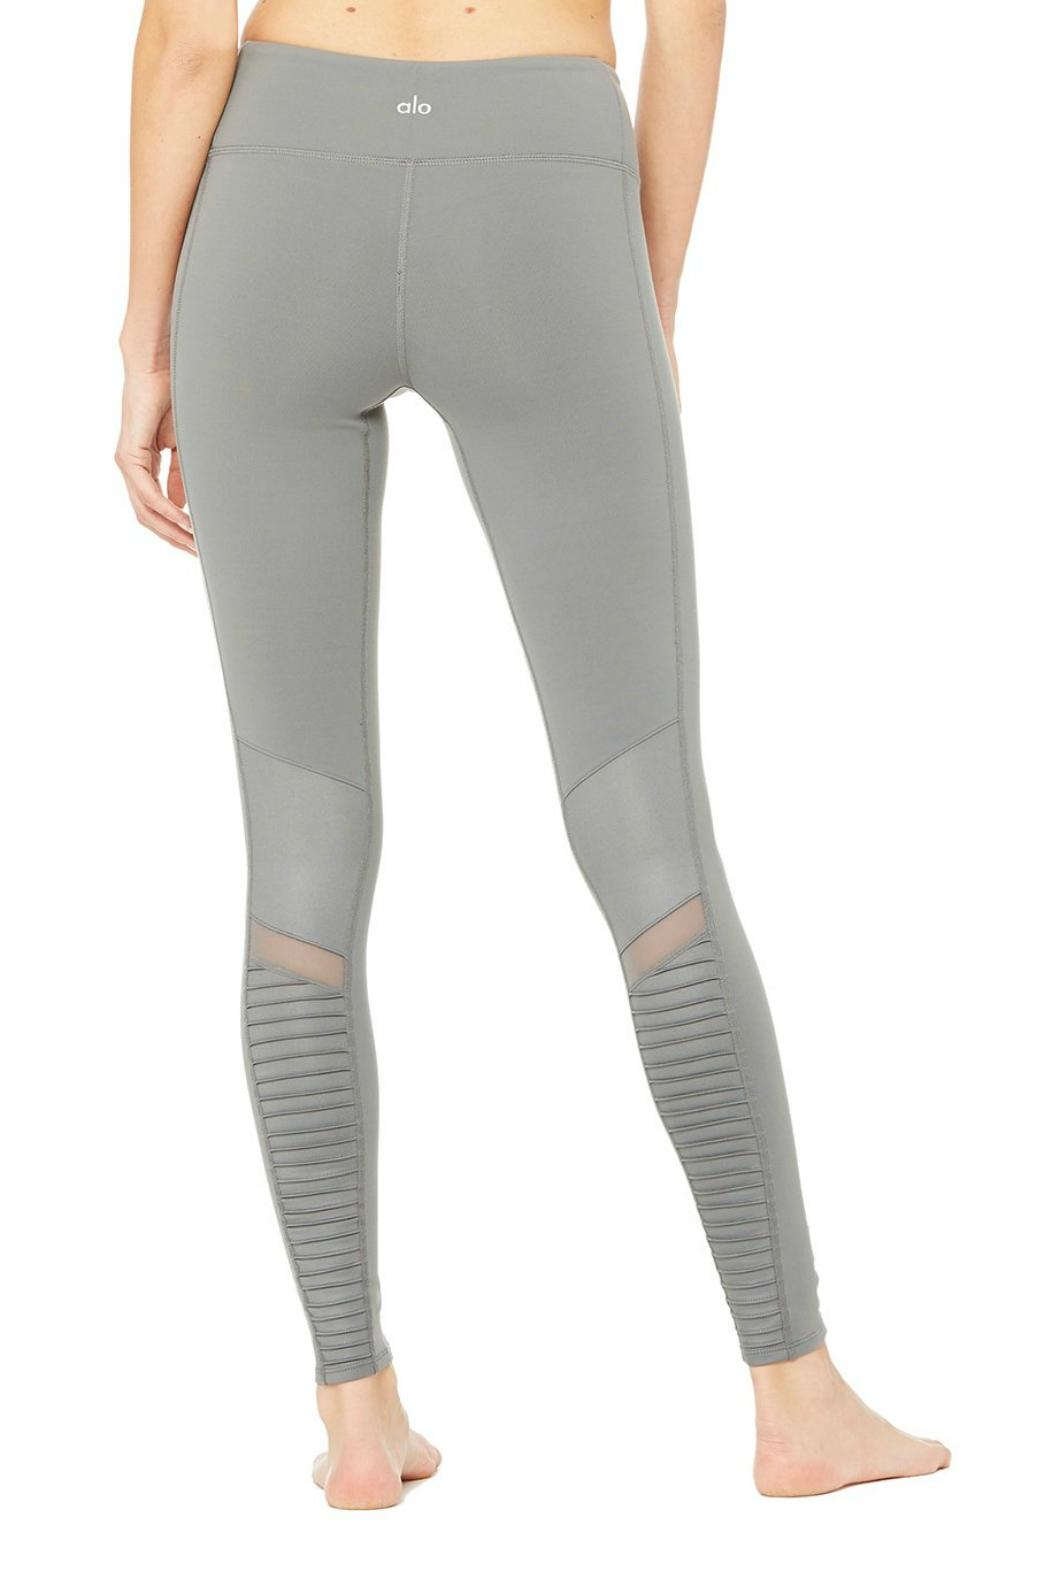 ALO Yoga Moto Legging - Side Cropped Image